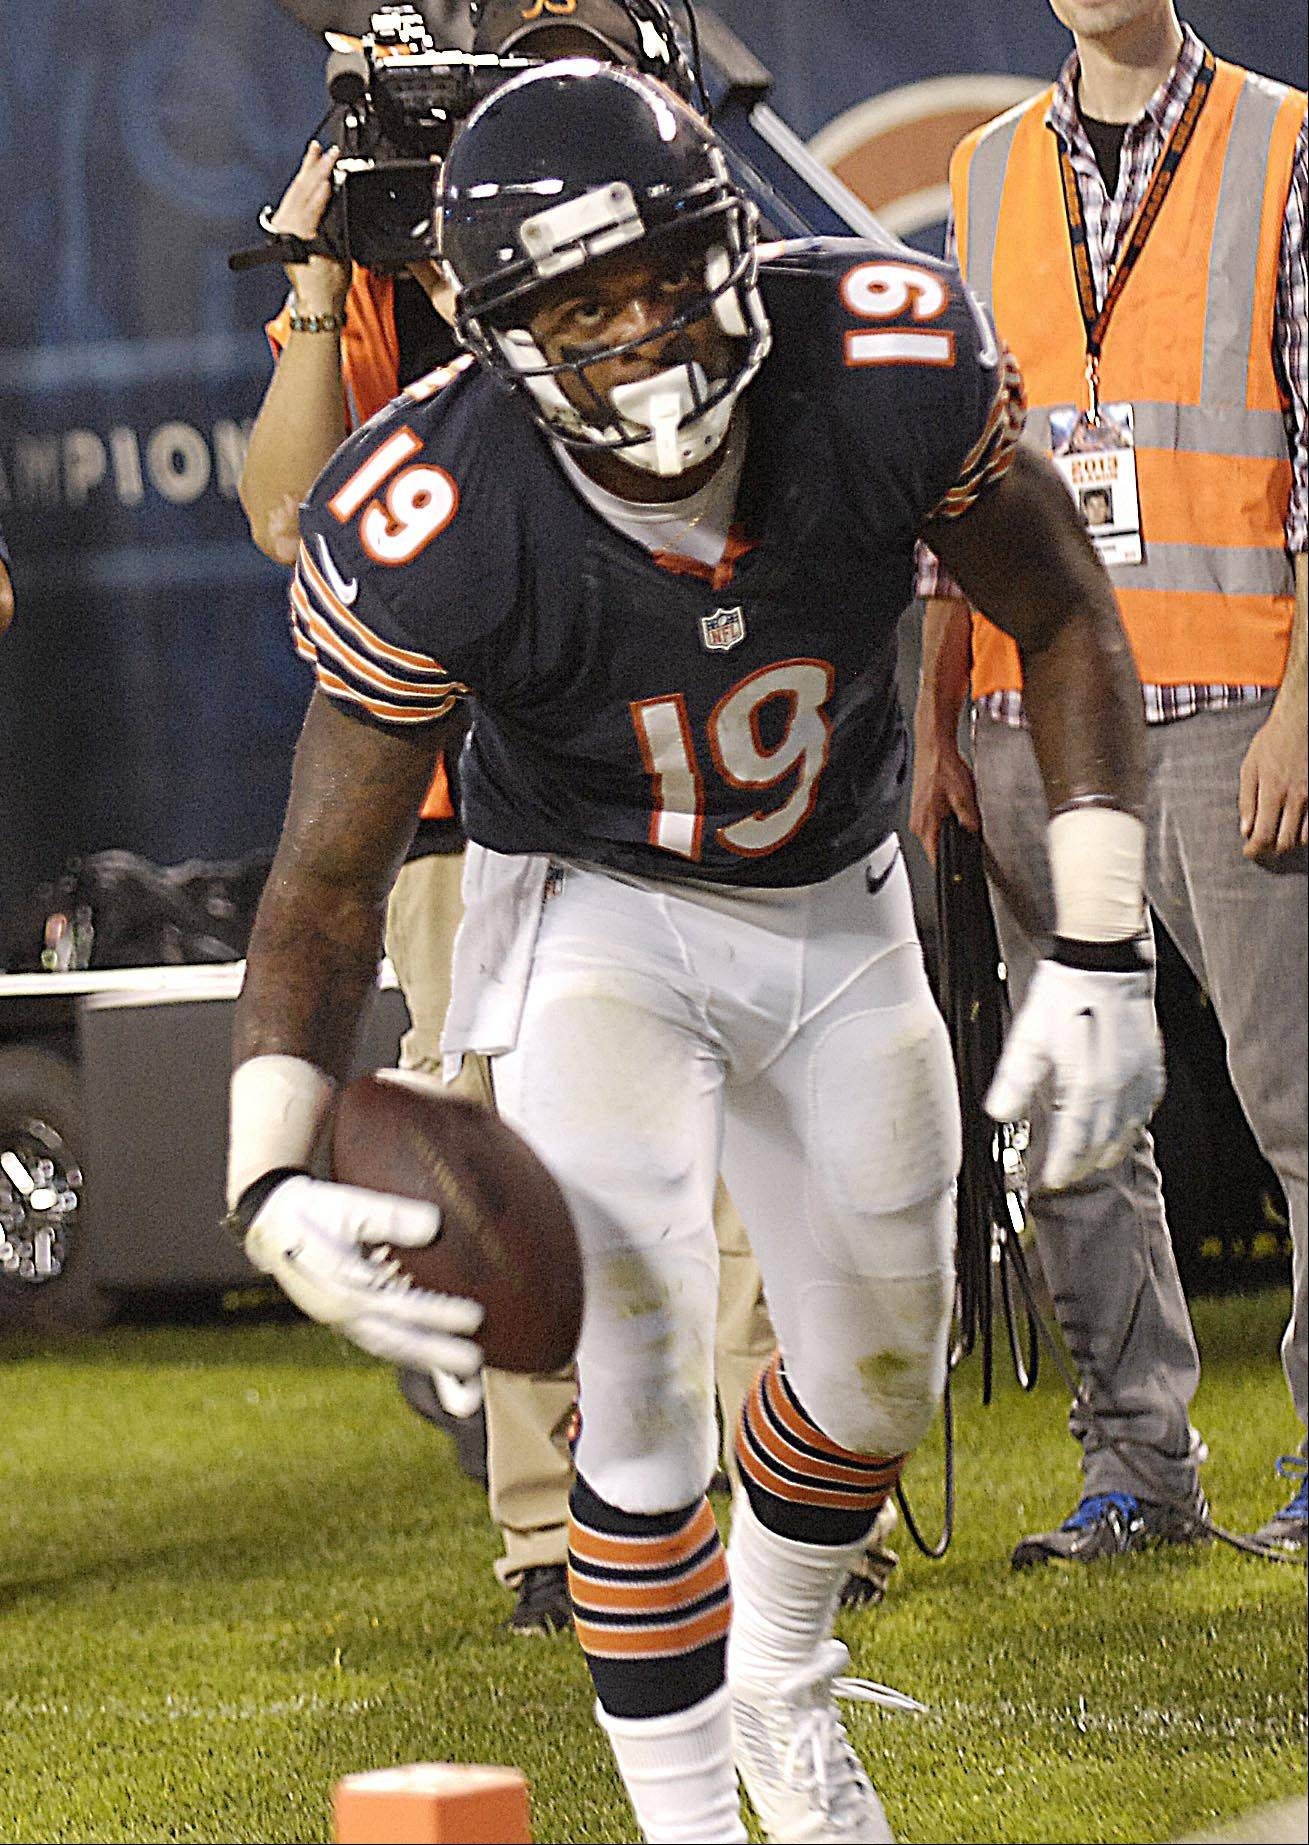 Chicago Bears wide receiver Joe Anderson turns after catching a touchdown pass.